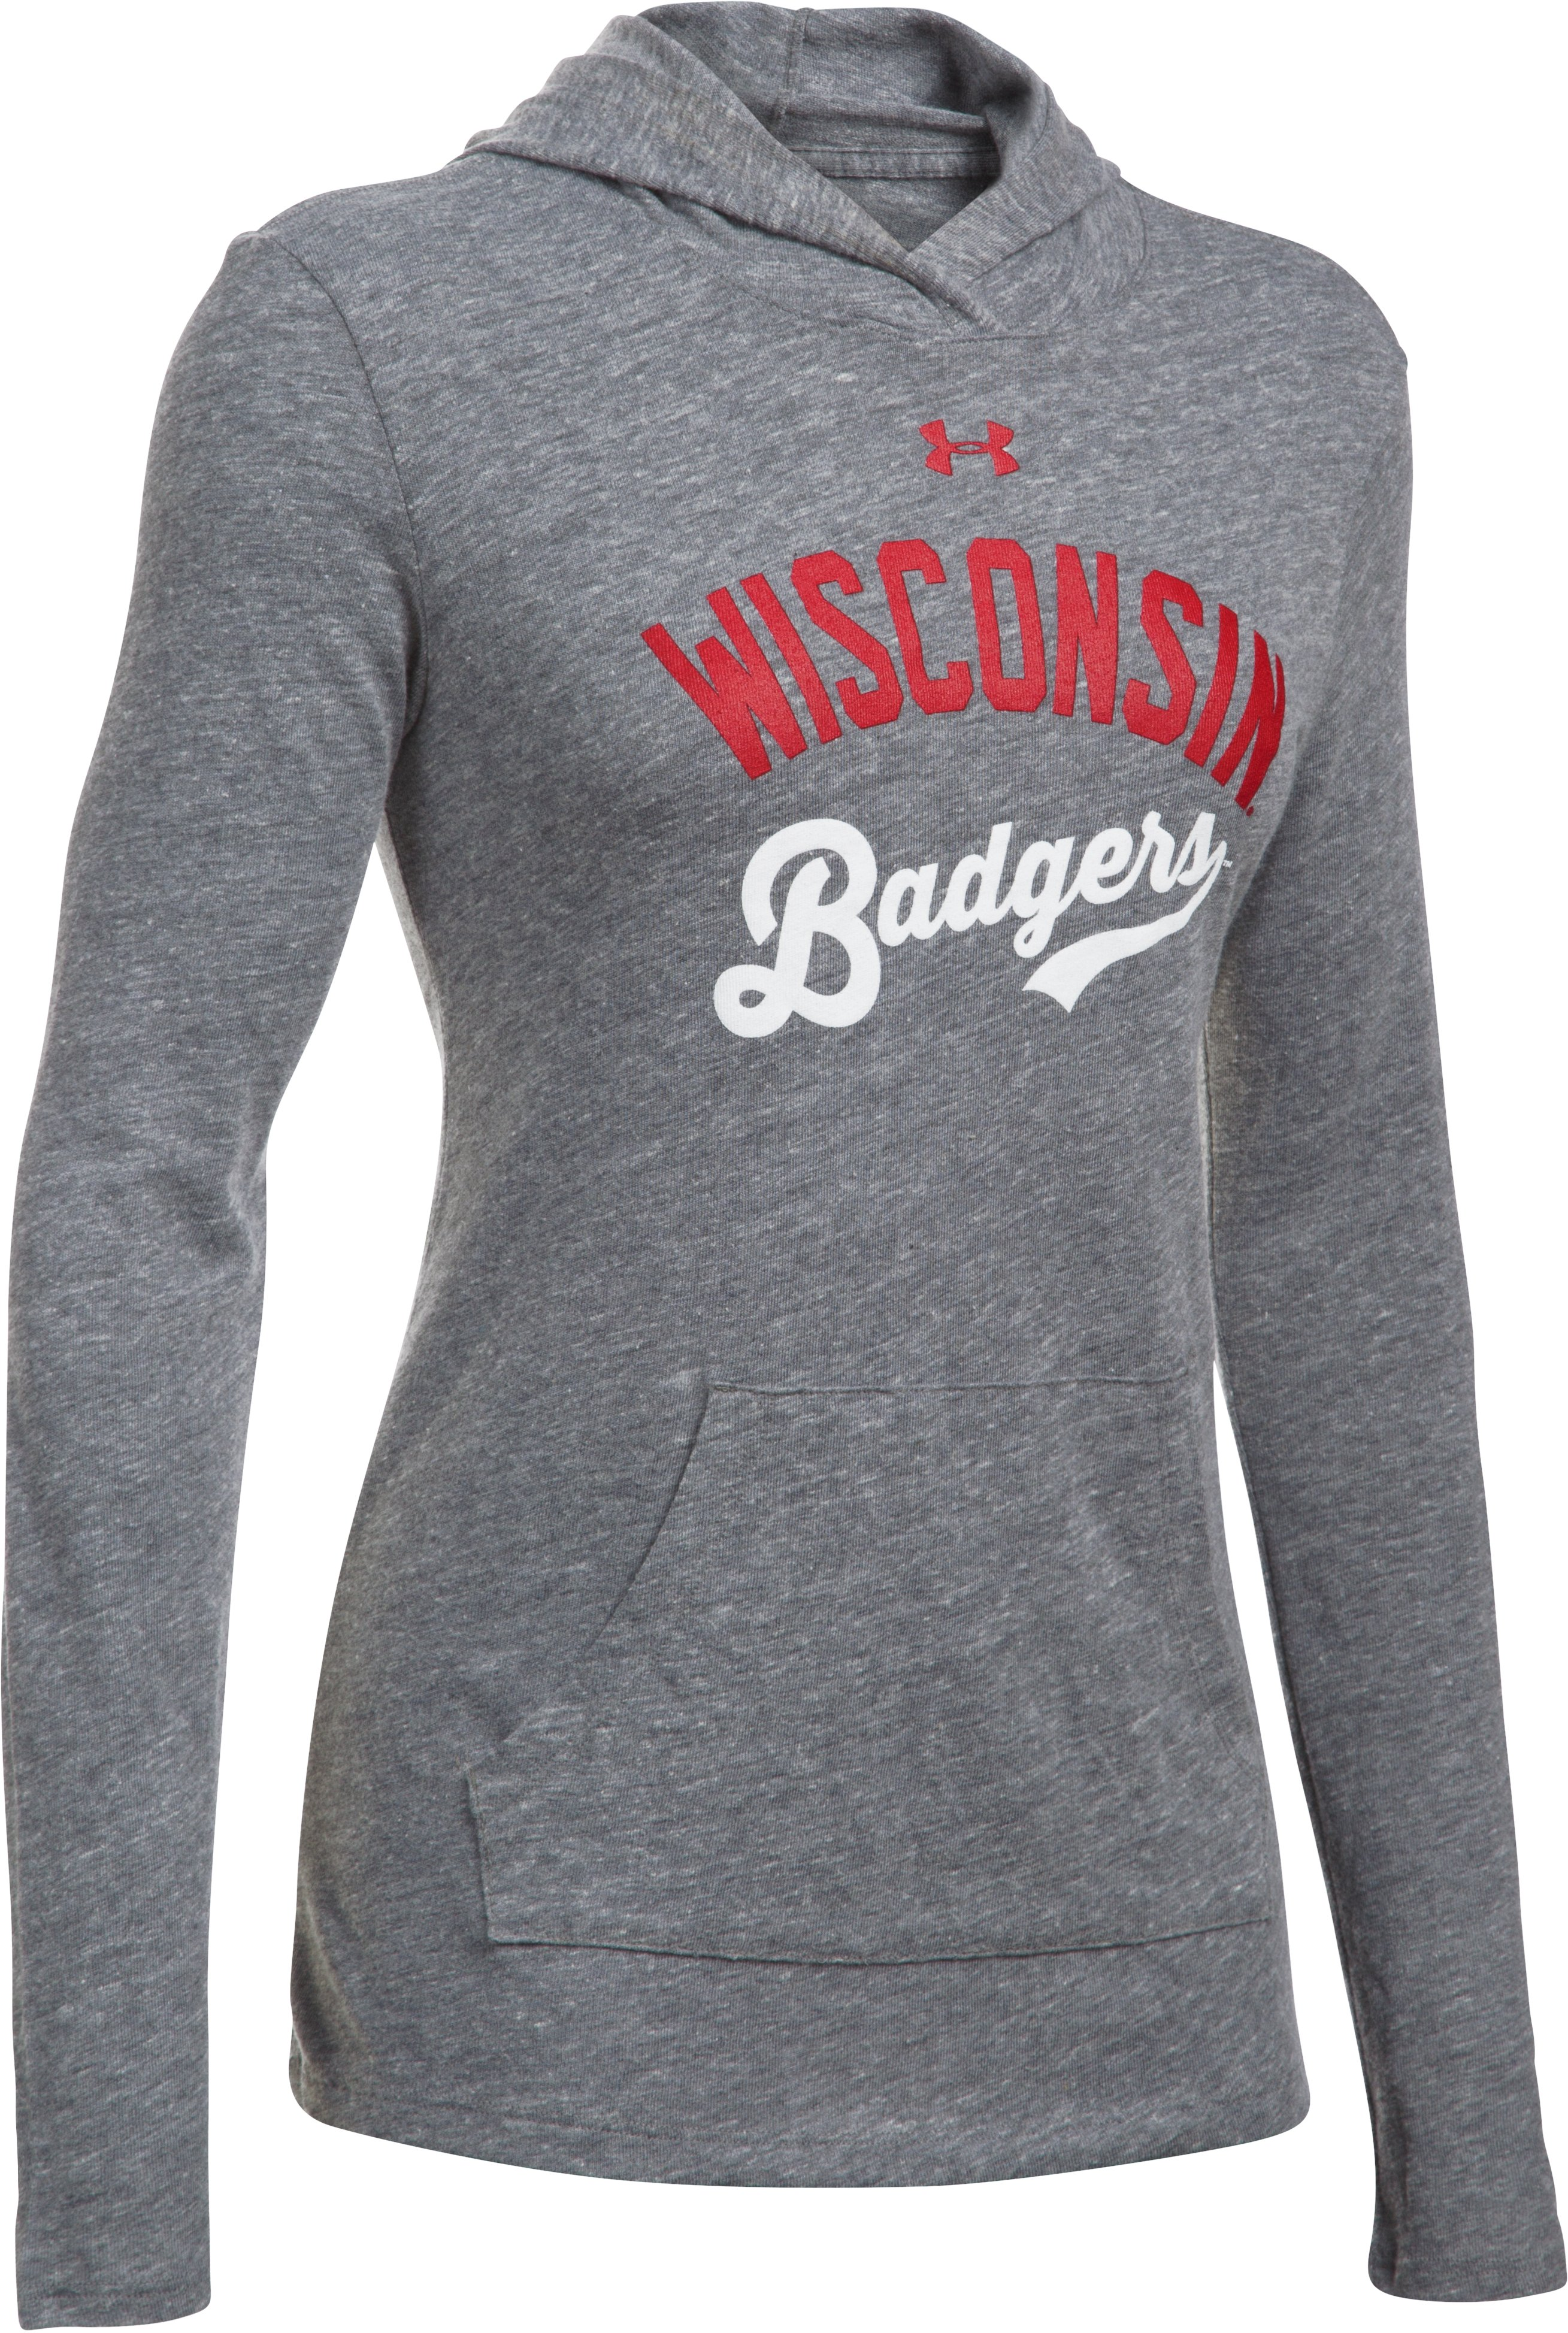 Women's Wisconsin UA Charged Cotton® Tri-Blend Hoodie, LEGACY GRAY HEATHER, undefined